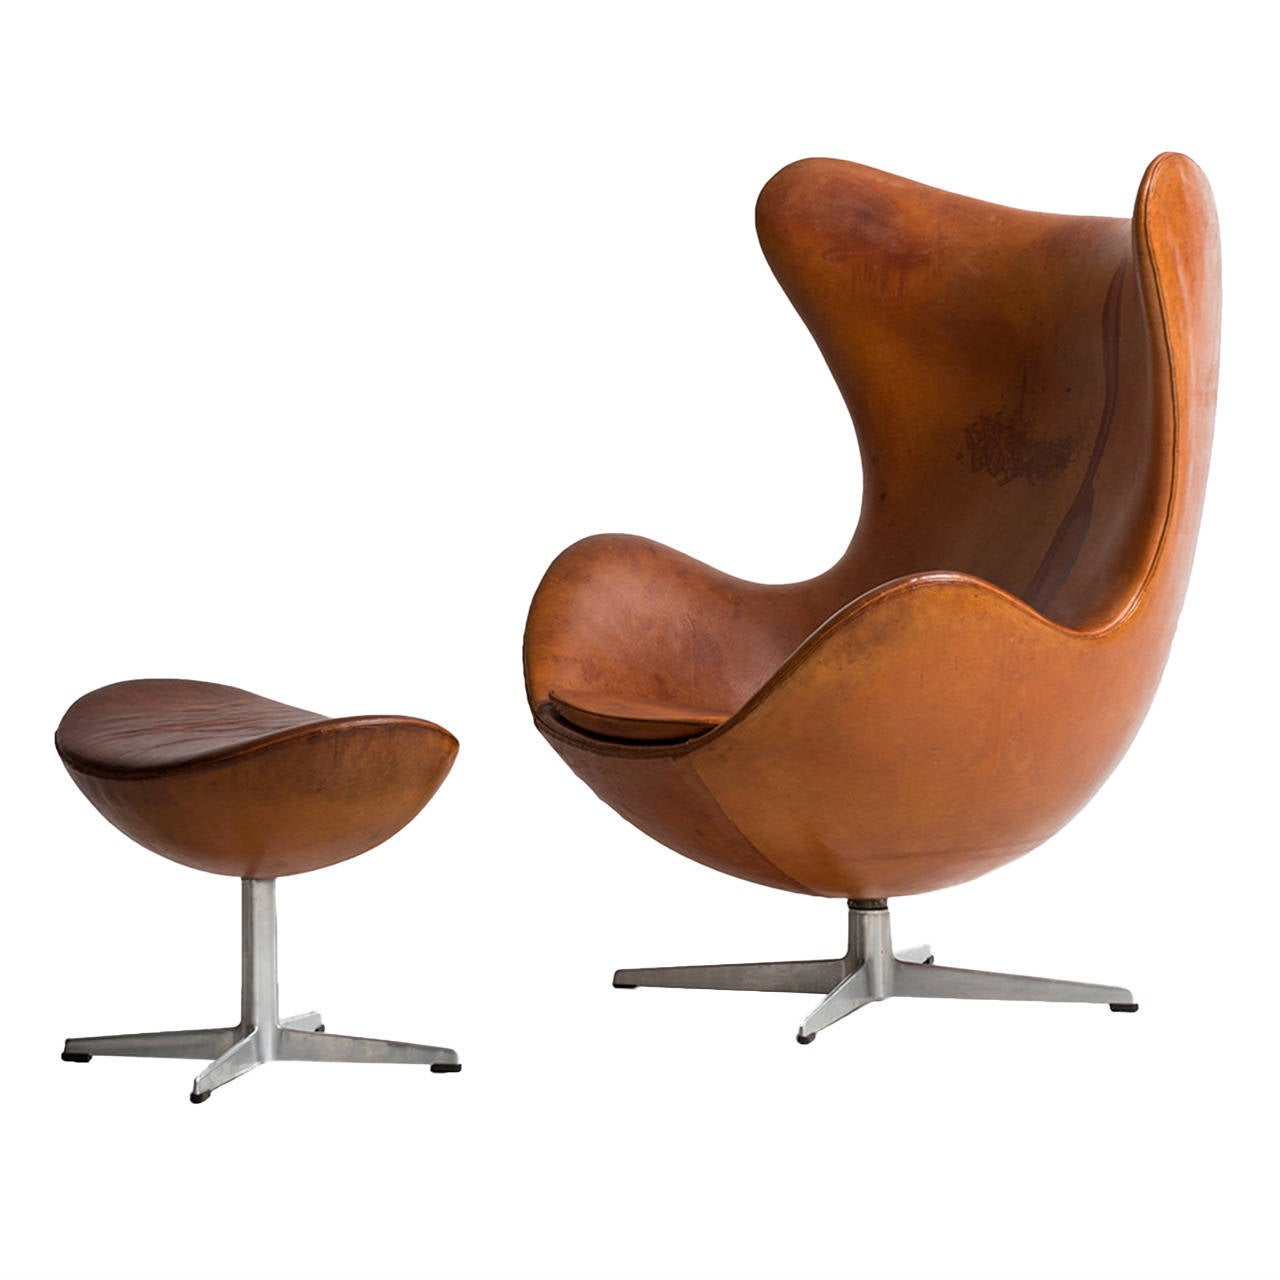 Arne Jacobsen Egg Chair In Original Cognac Brown Leather By Fritz